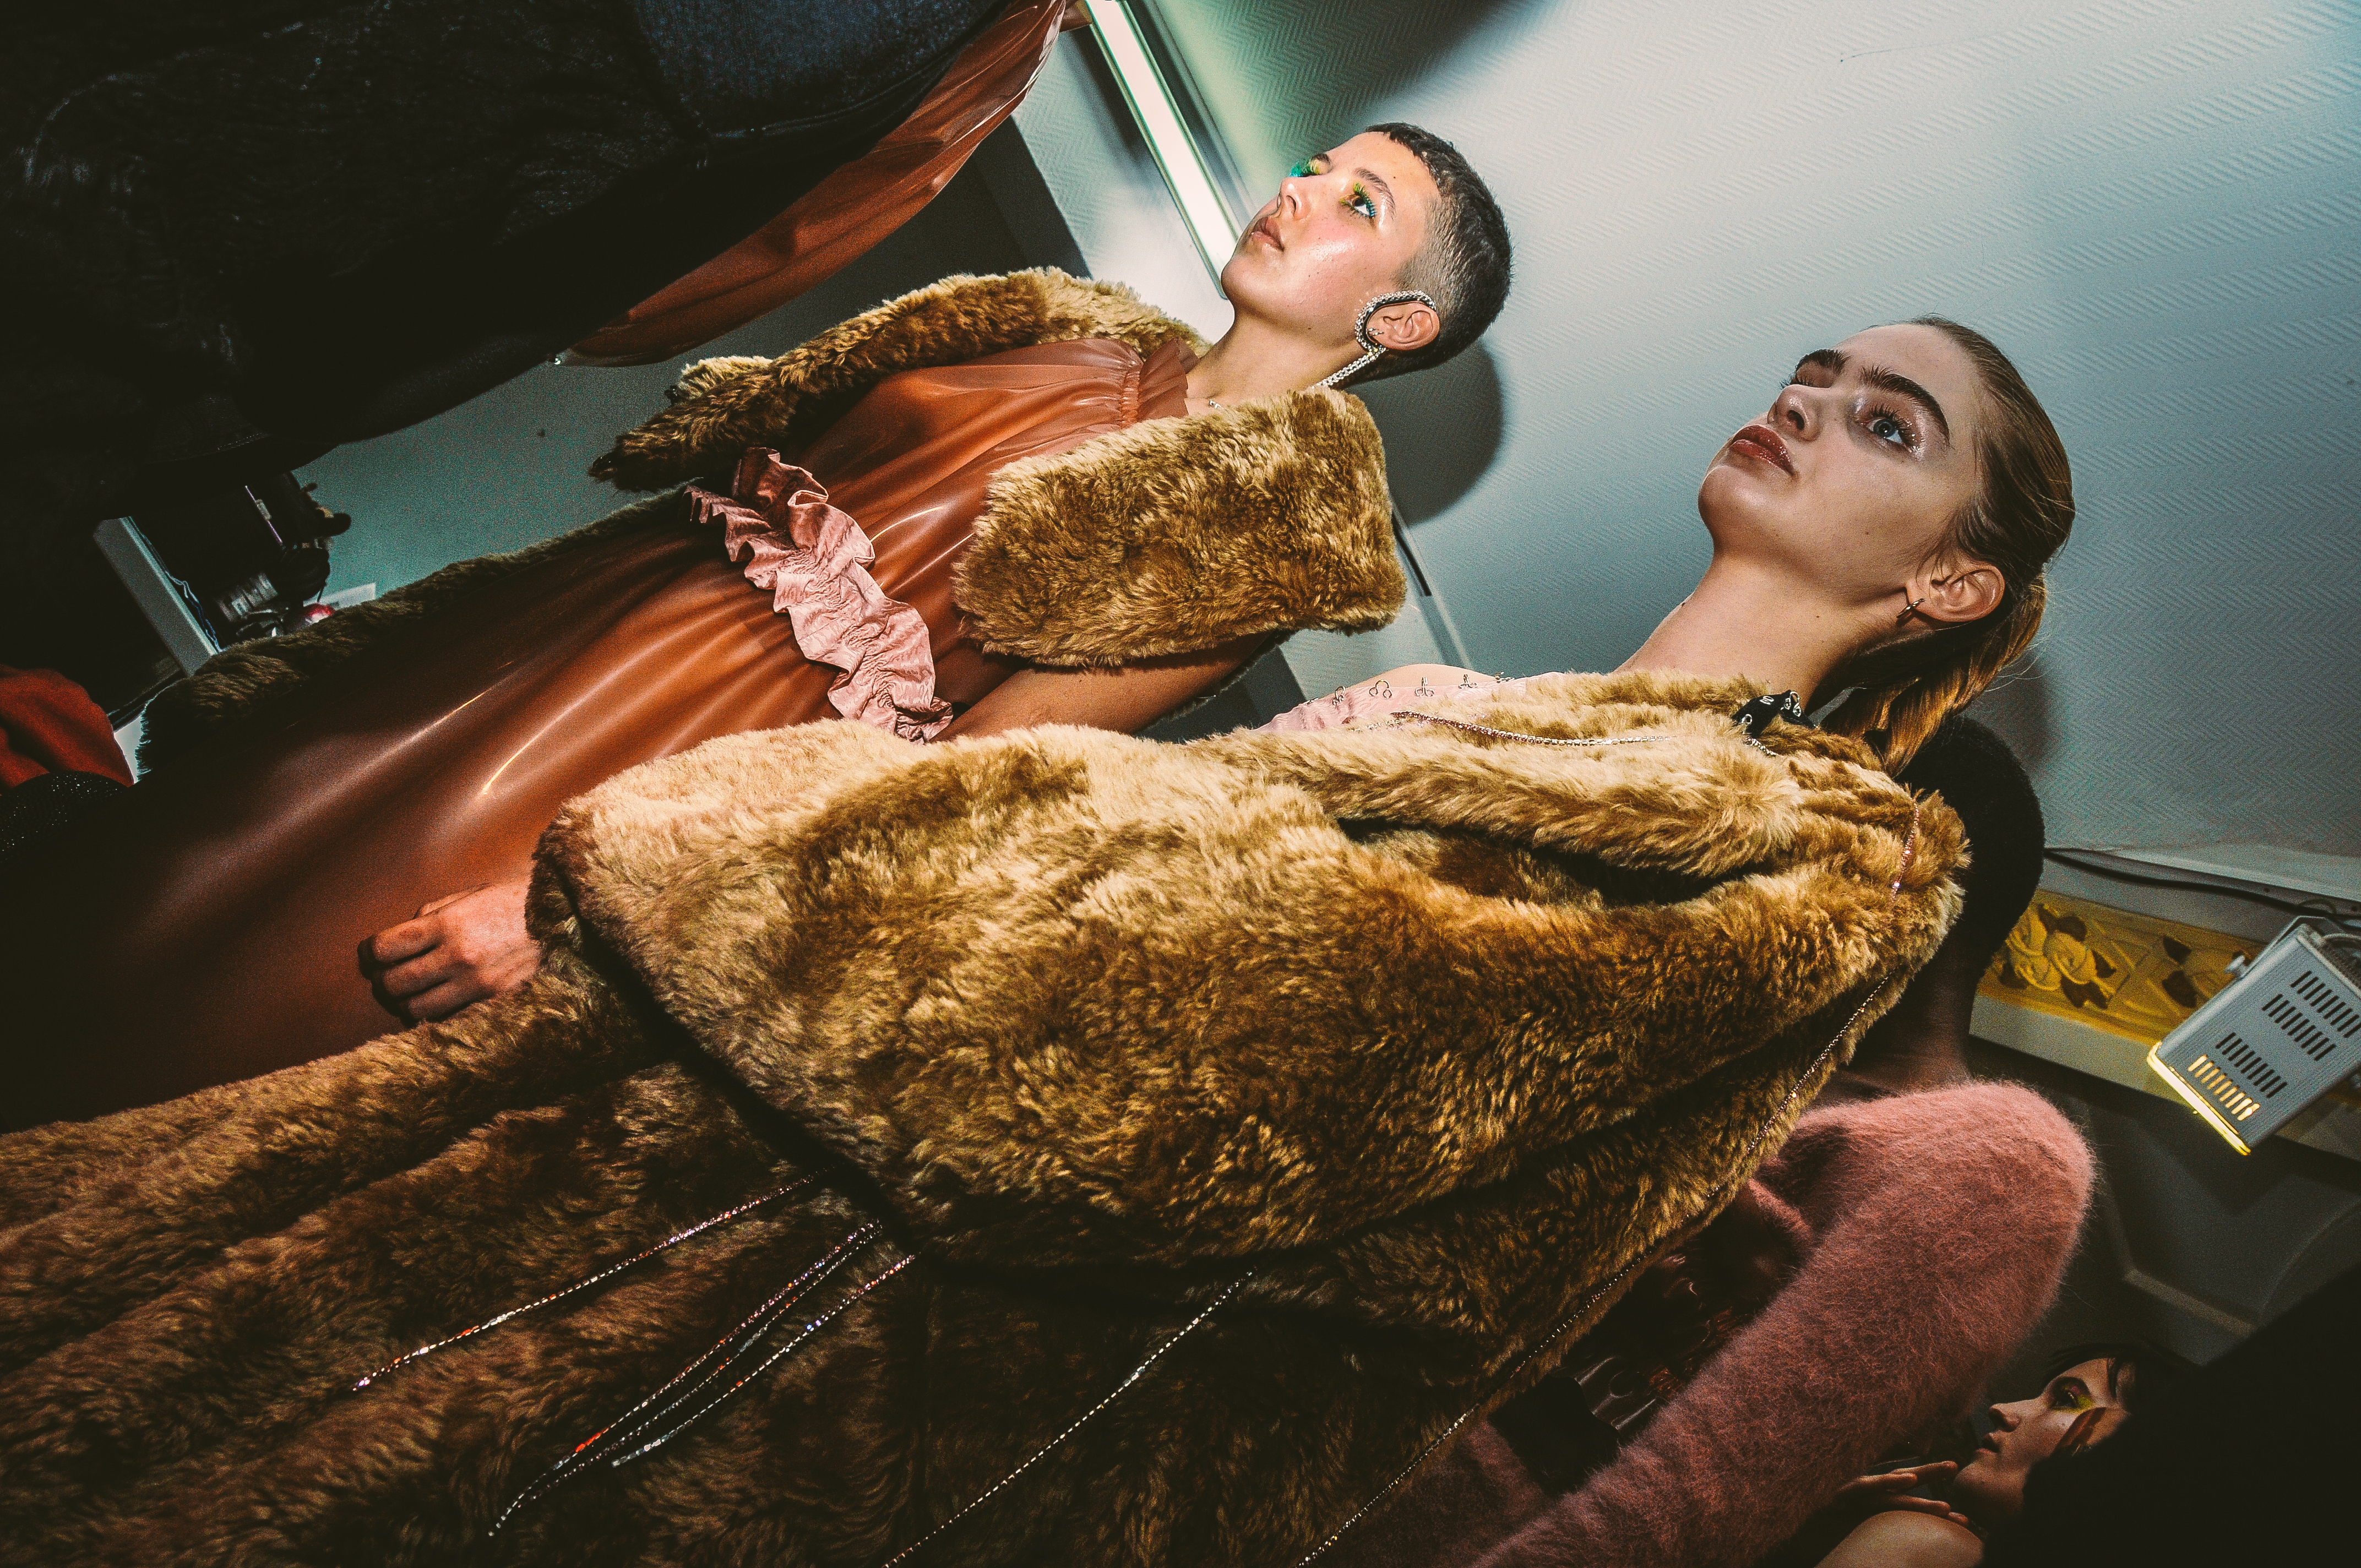 BACKSTAGE NEITH NYER FALL-WINTER 2017/2018 COLLECTION – PARIS